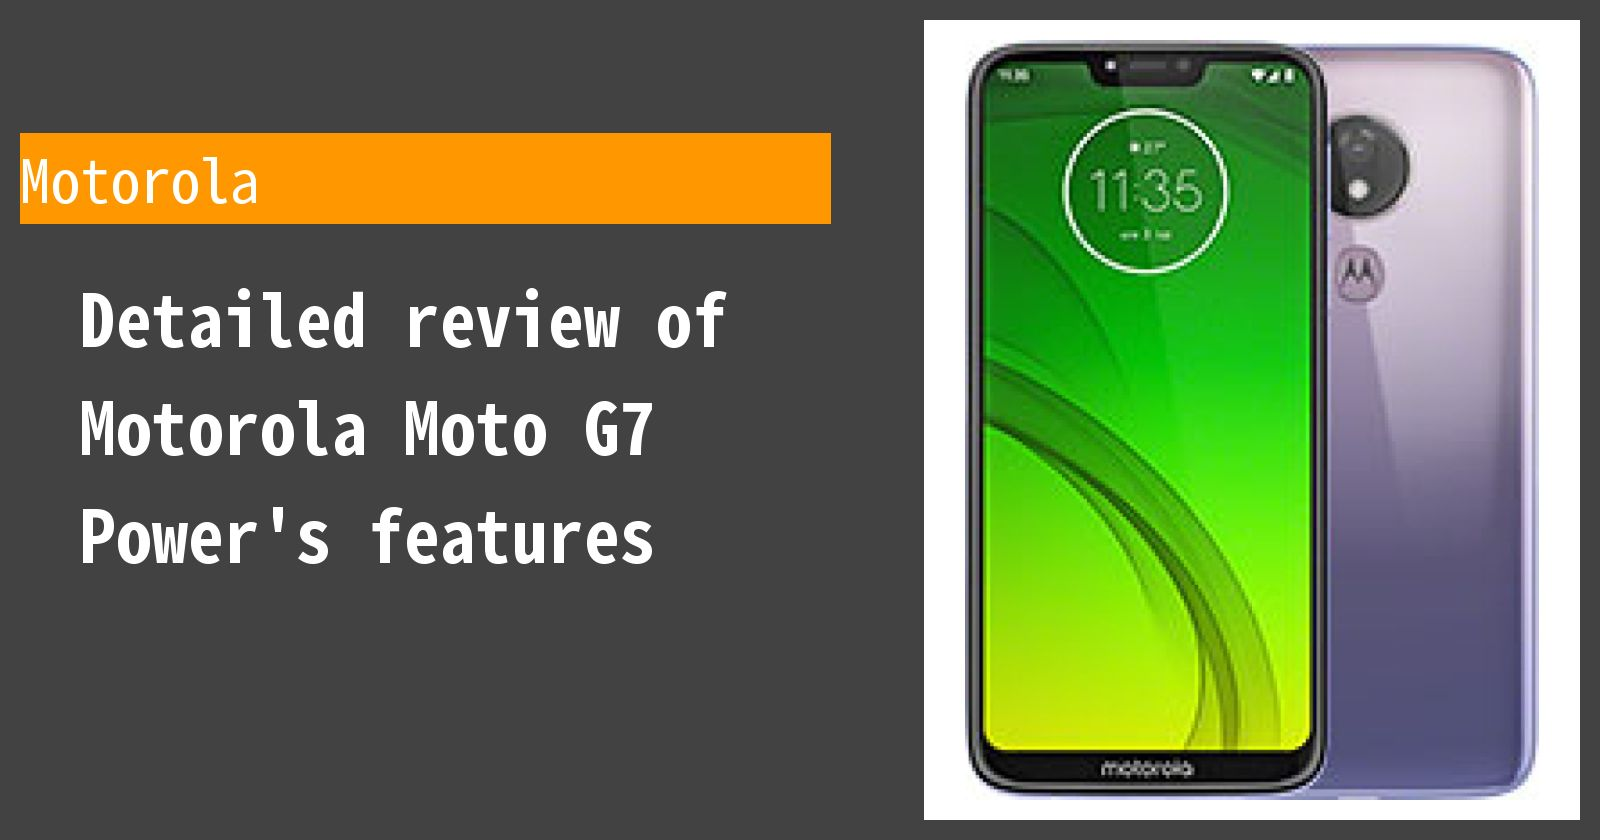 Detailed review of Motorola Moto G7 Power's features